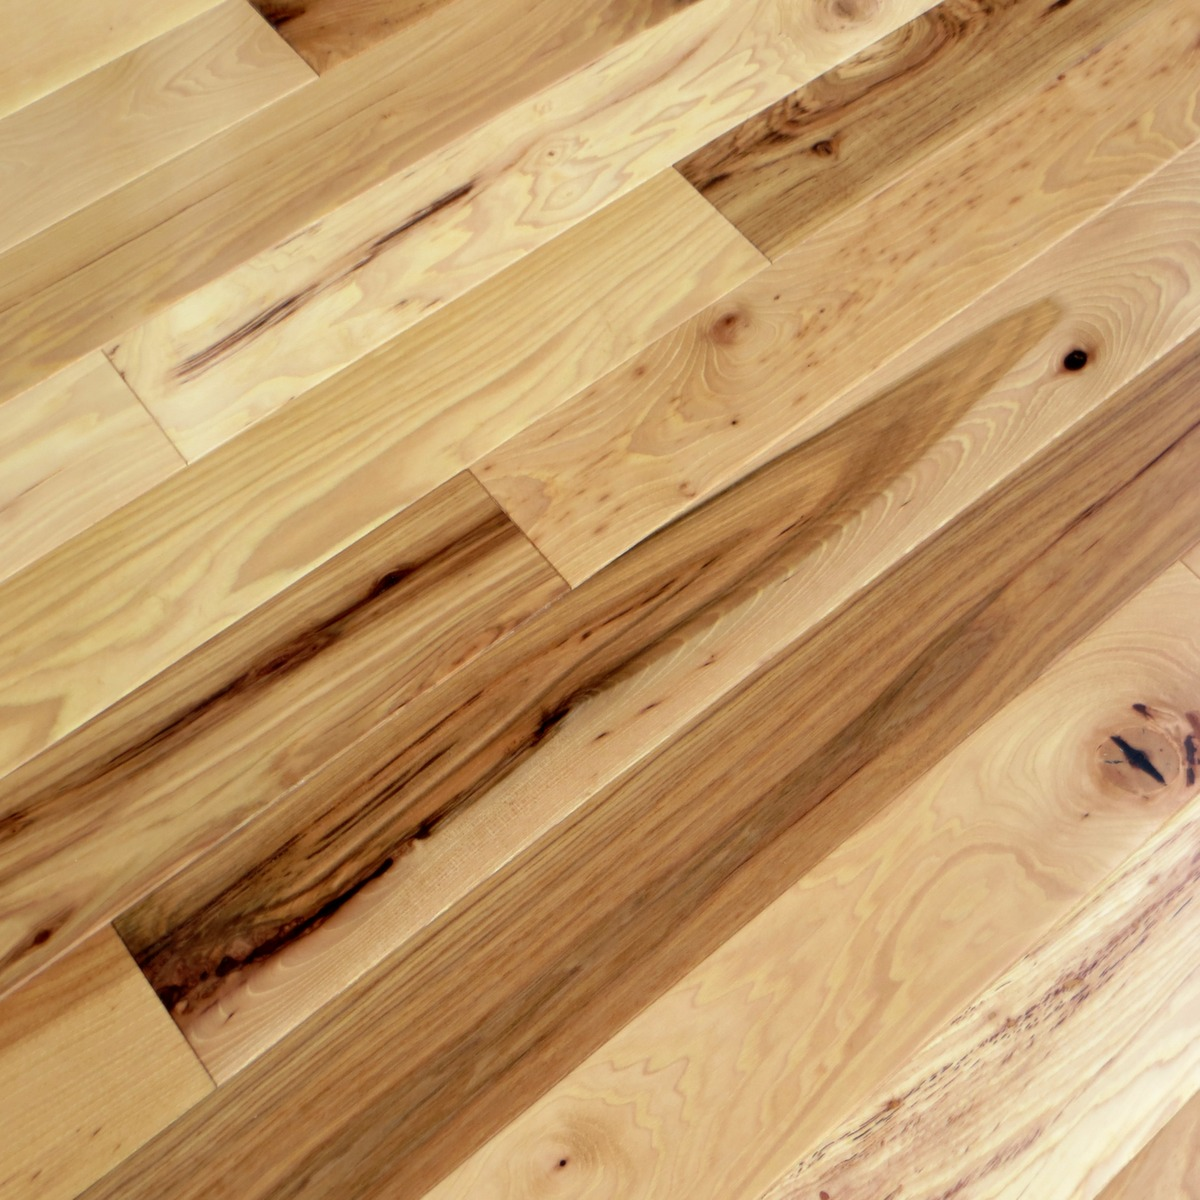 American Collection Hickory Hardwood Flooring | Hickory Wood Floors |  Elegance Plyquet Flooring - American Collection Hickory Hardwood Flooring Hickory Wood